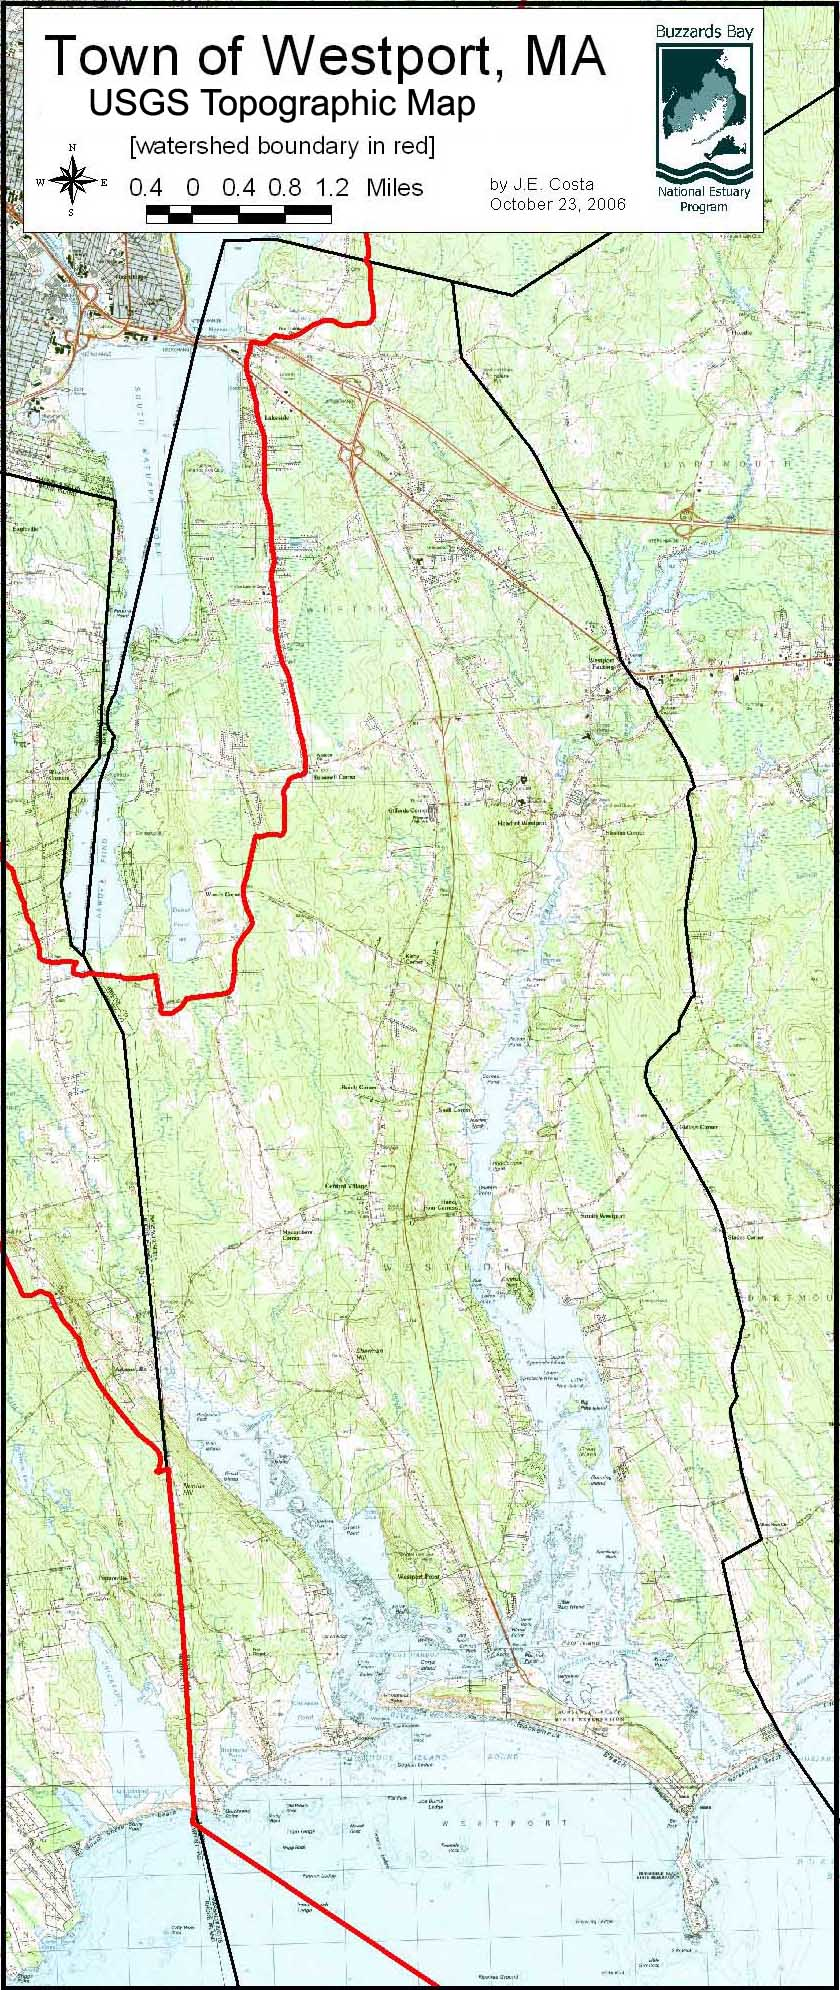 Topographic Map of the Town of Westport